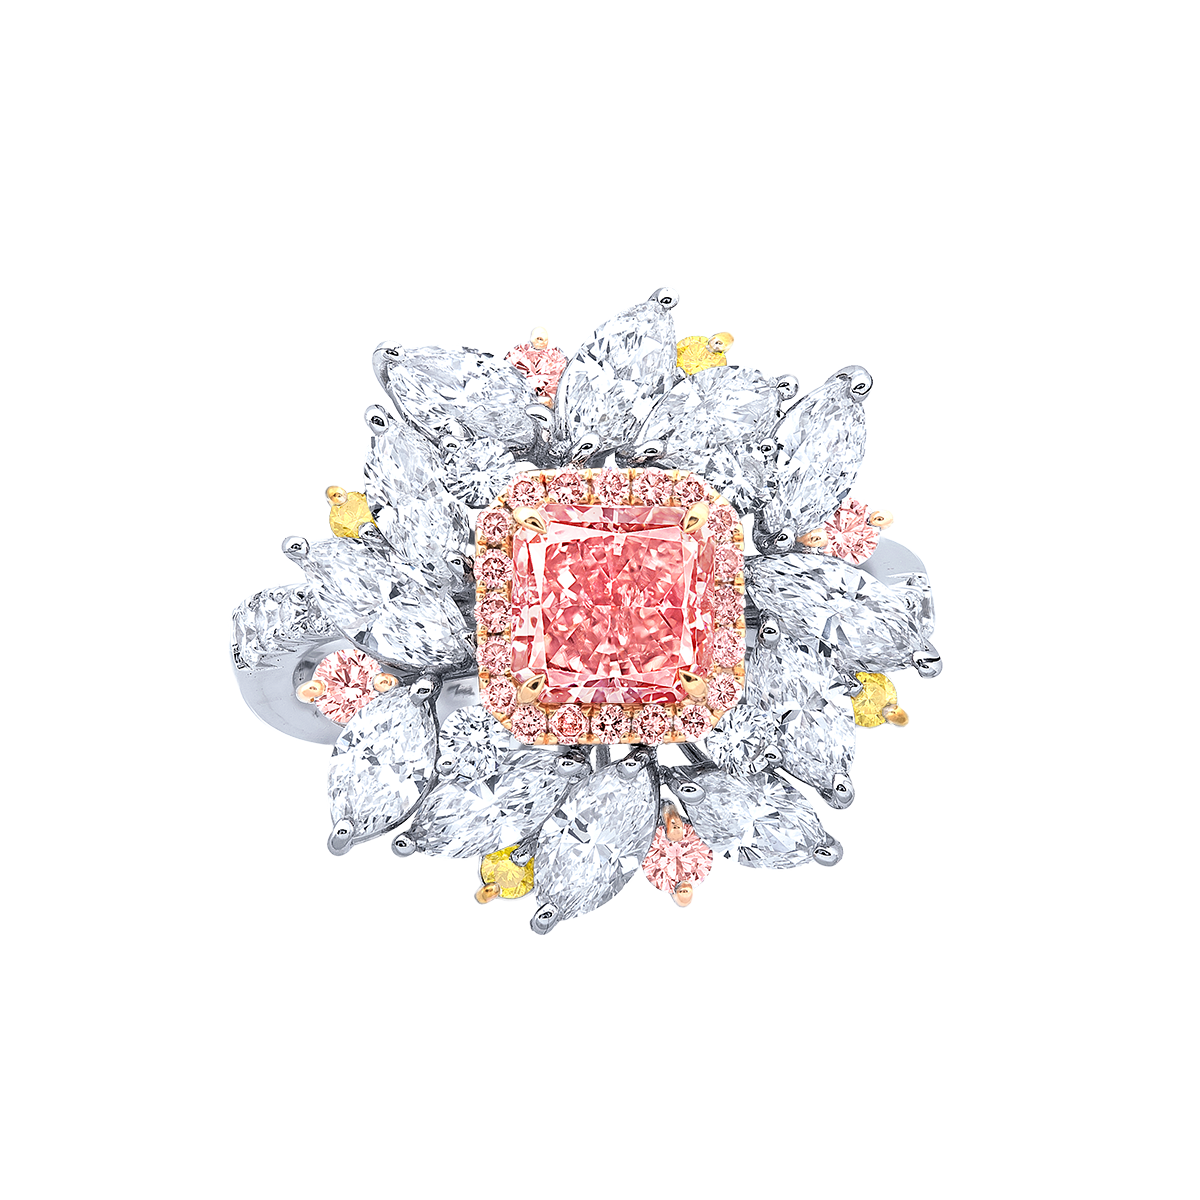 阿蓋爾 1.11克拉 橘粉鑽鑽戒